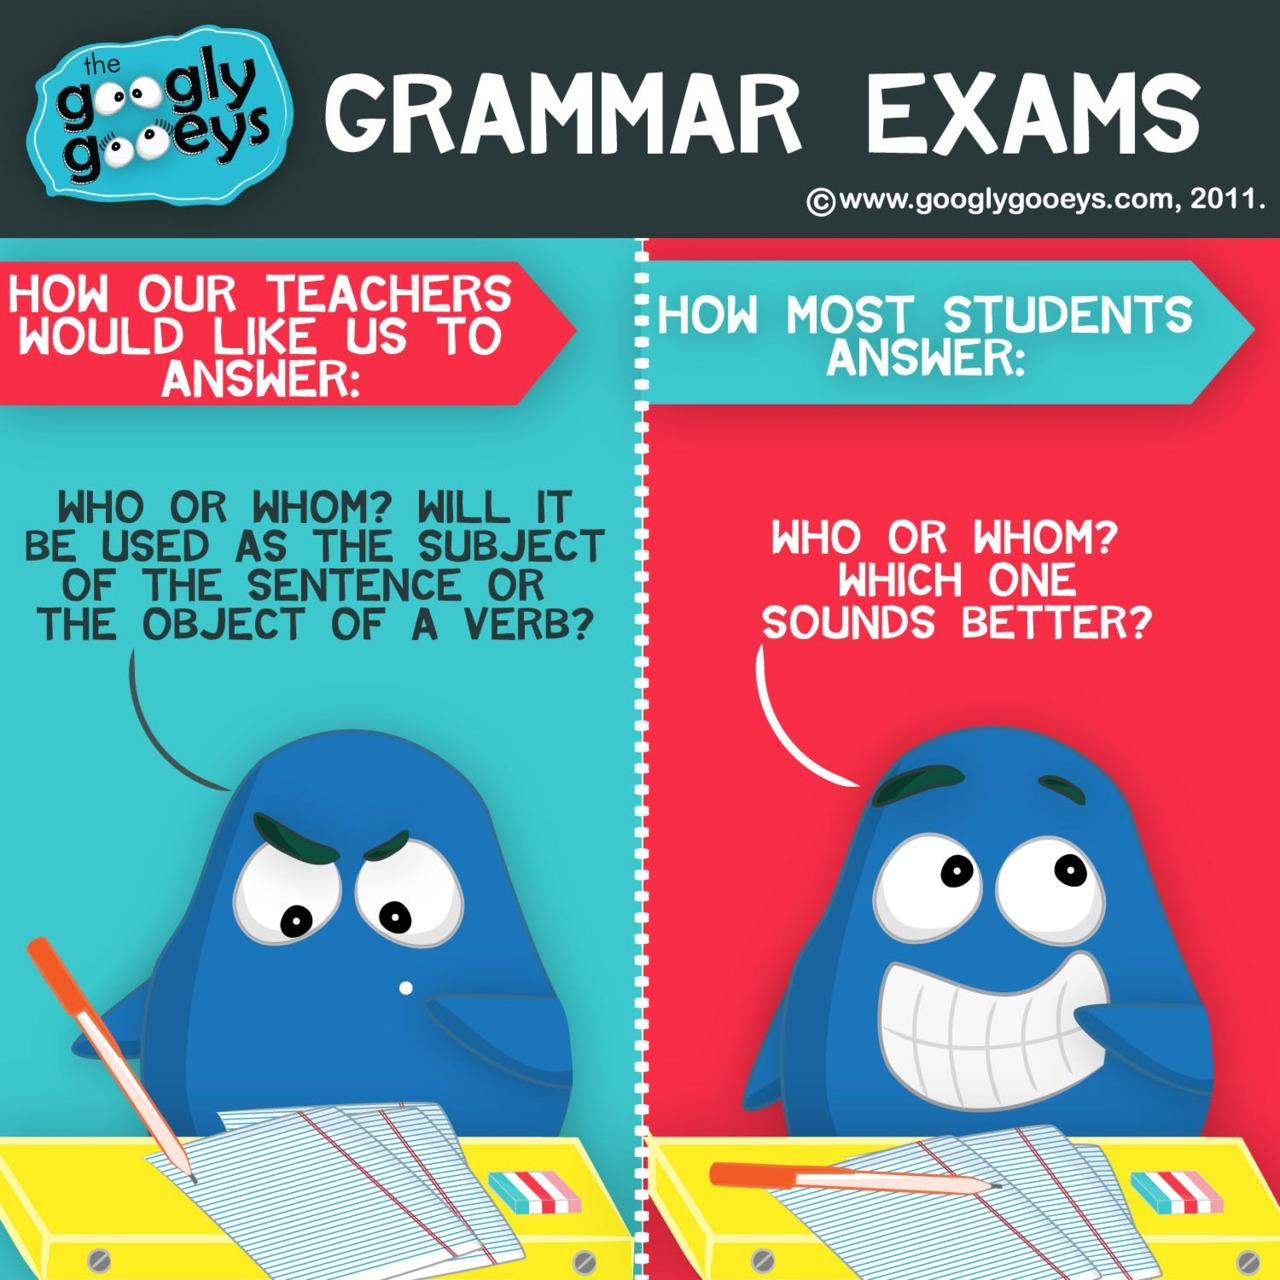 Grammar Exams: Who or whom?